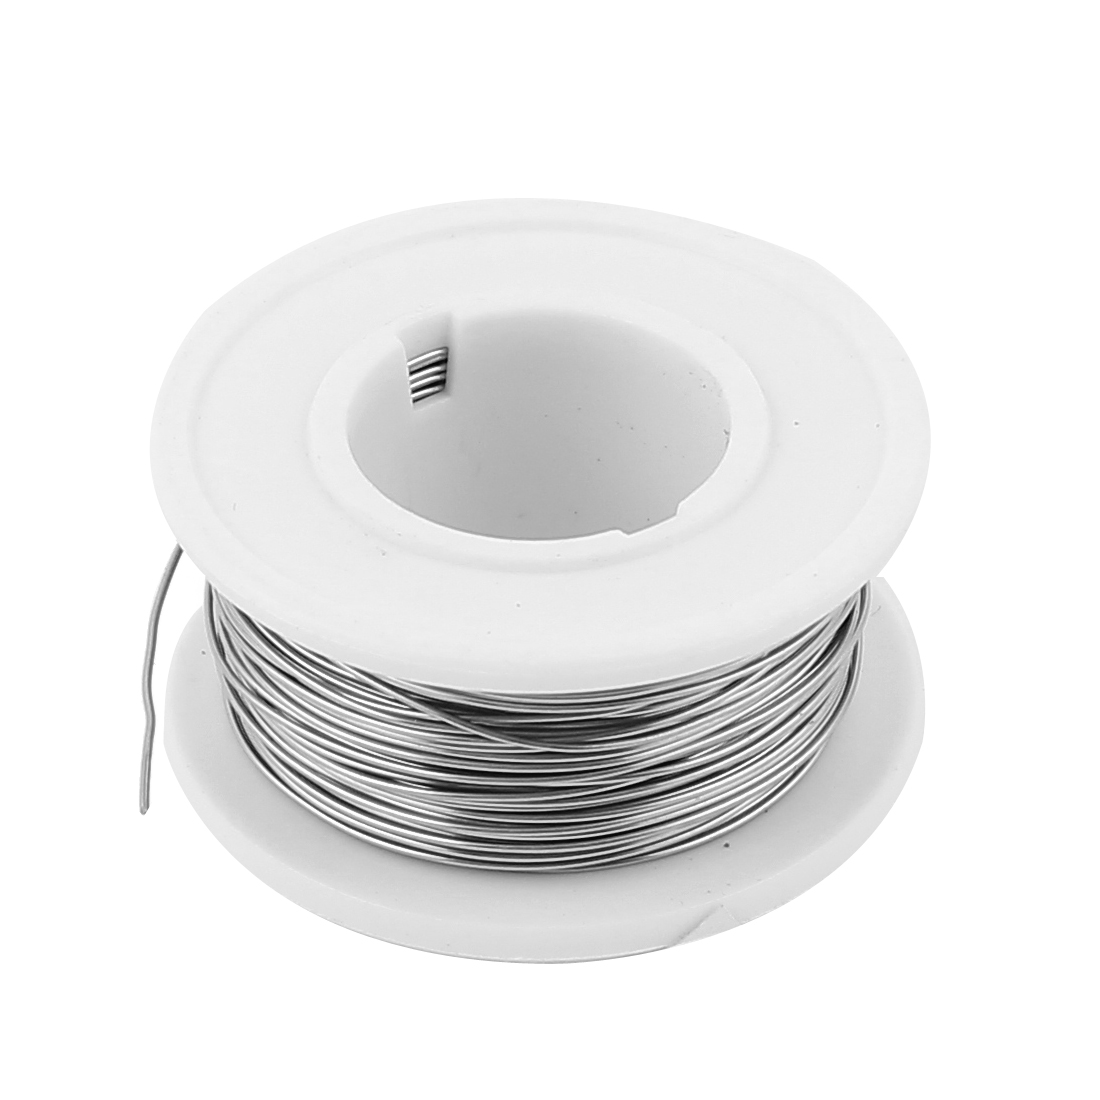 Nichrome 80 Round Wire 0.5mm 24Gauge AWG 82.02ft Roll 5.551Ohm/m Resistance